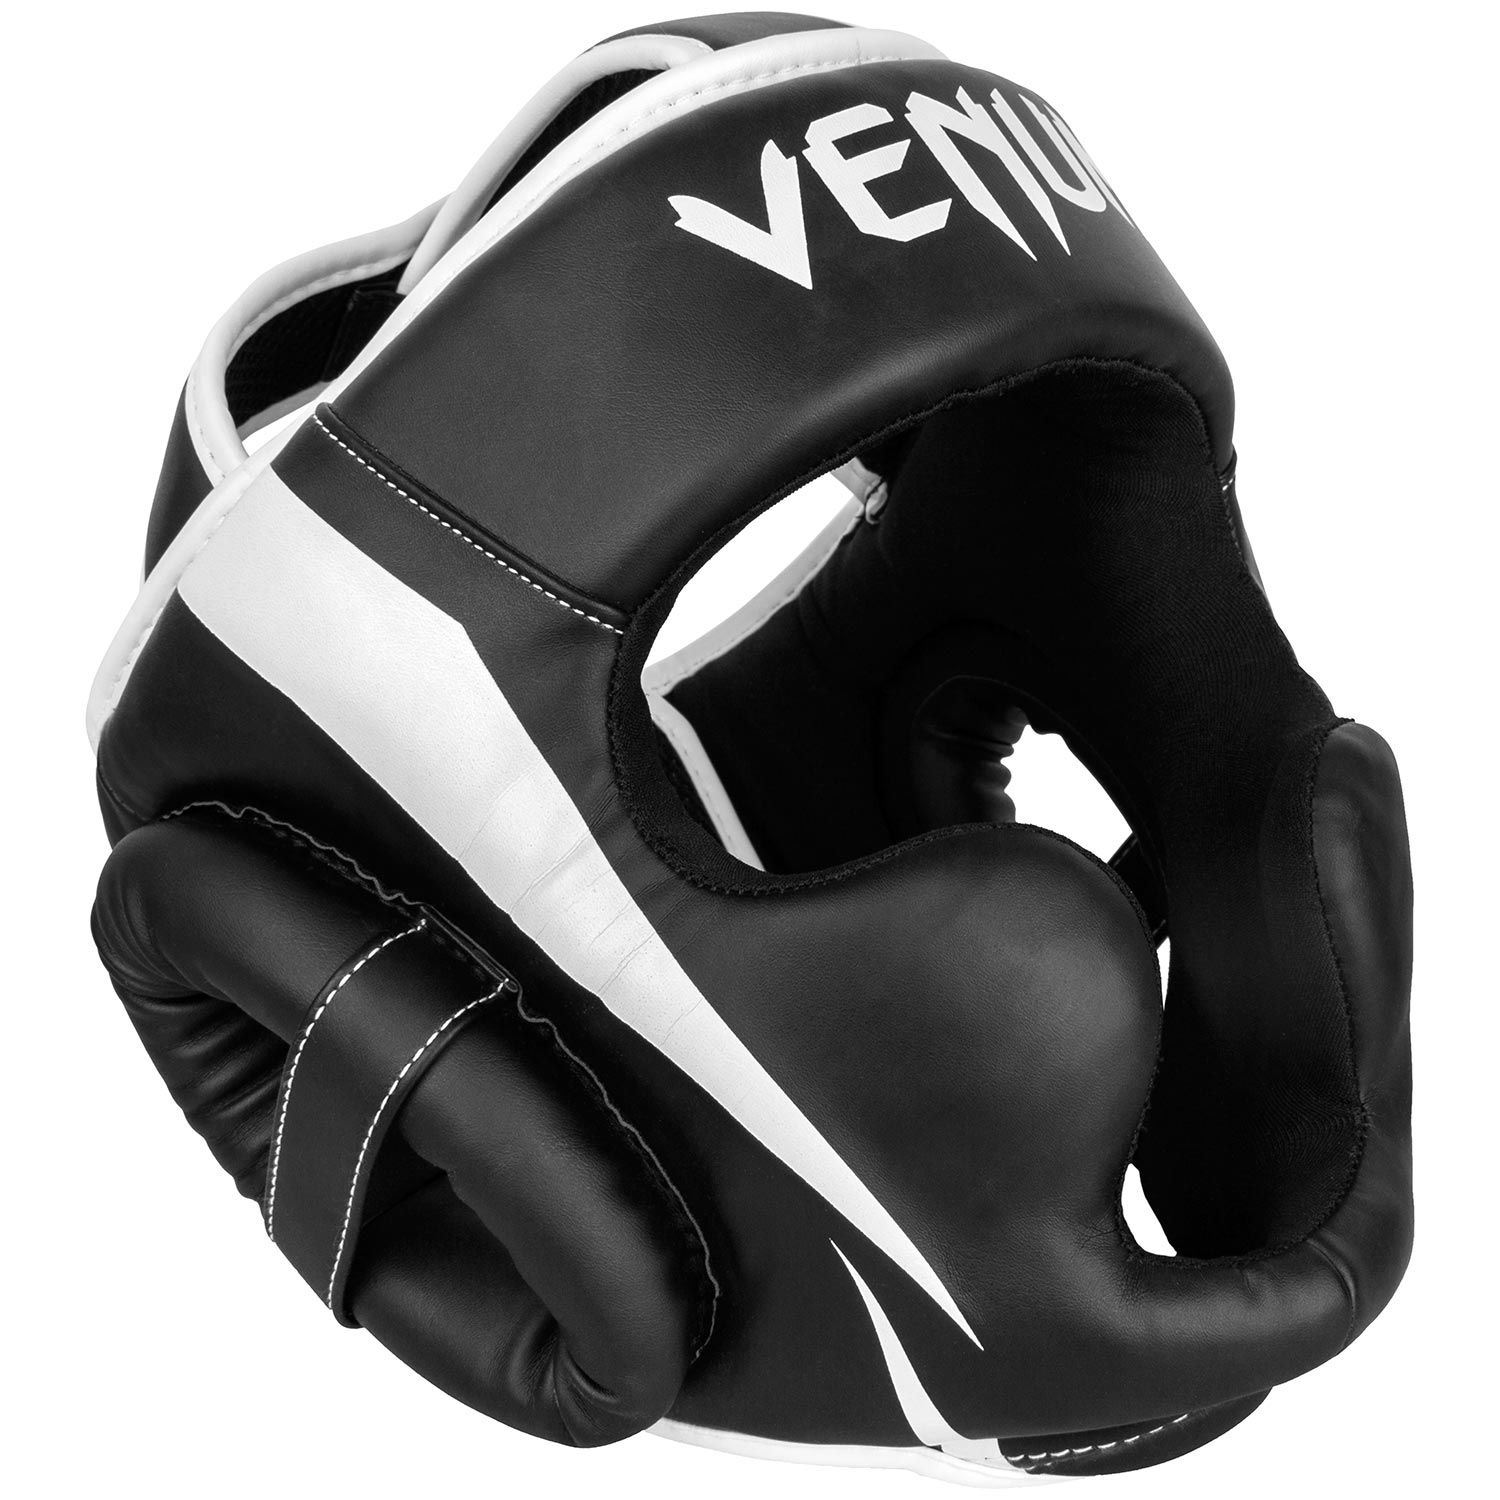 Casco Venum Elite - Negro/Blanco - Taille Unique